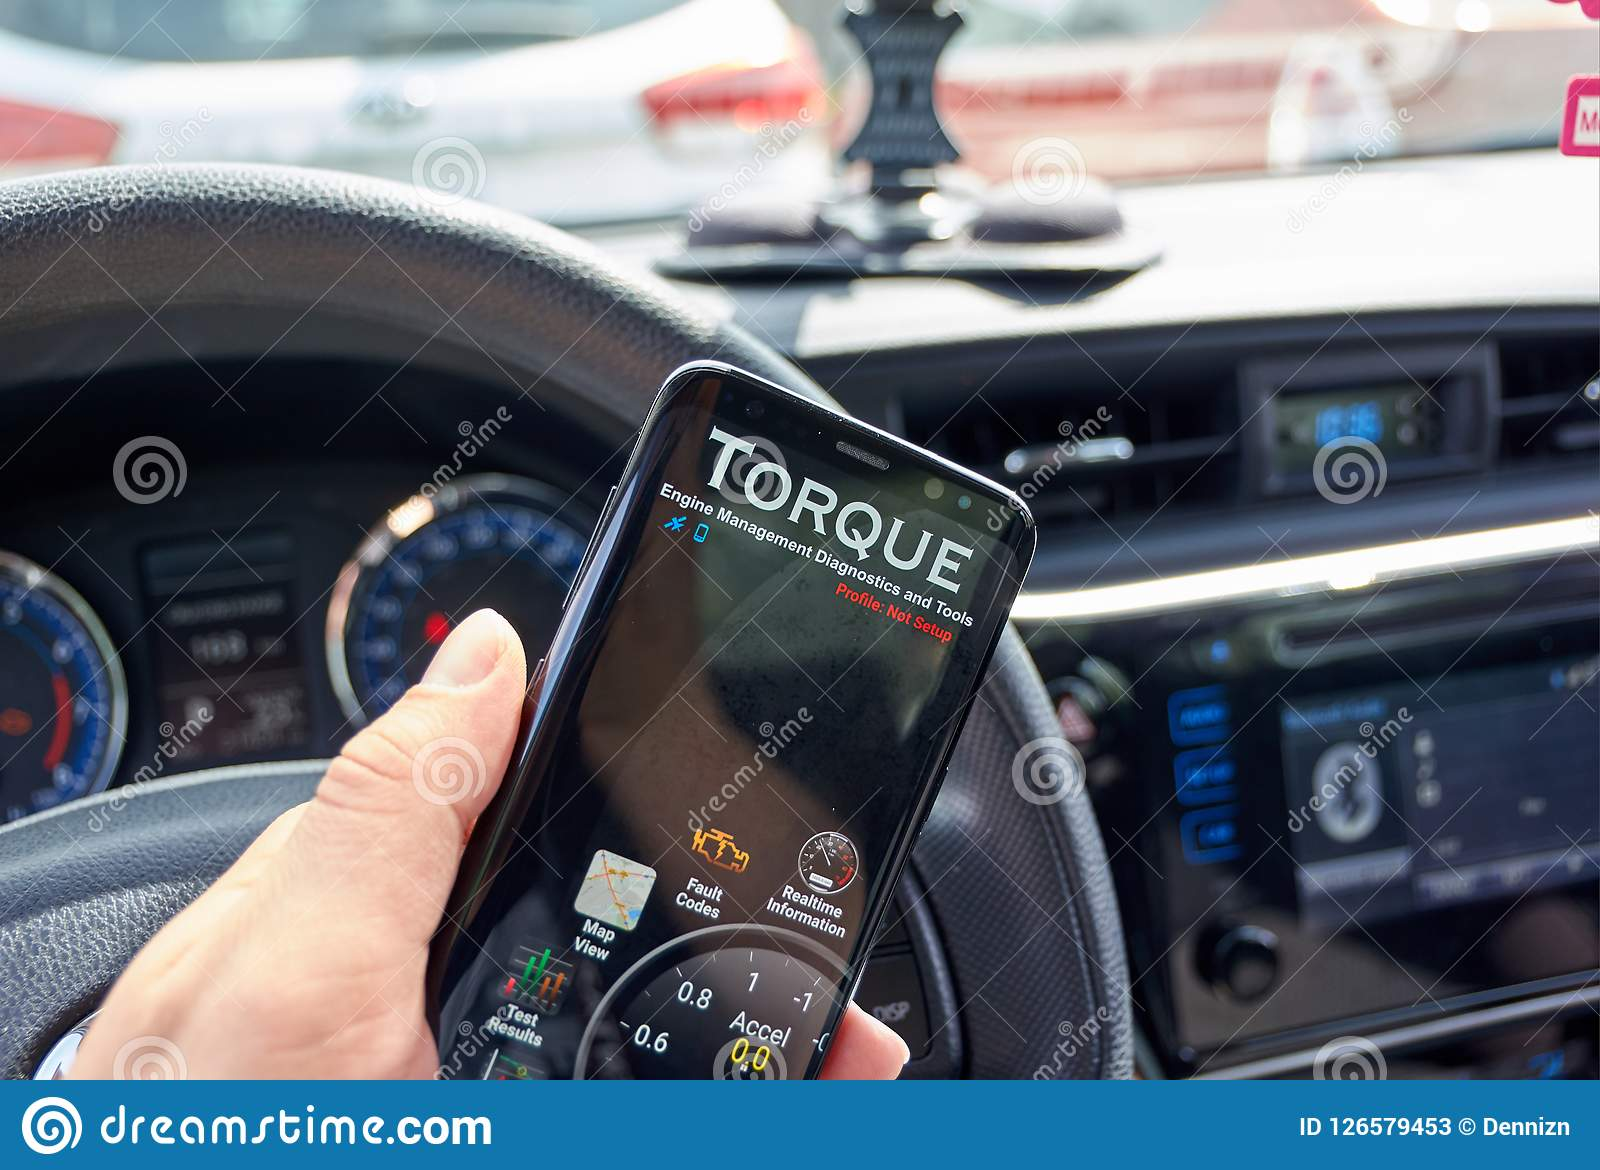 Torque pro android version | Torque Pro 1 8 202 Cracked Apk Download